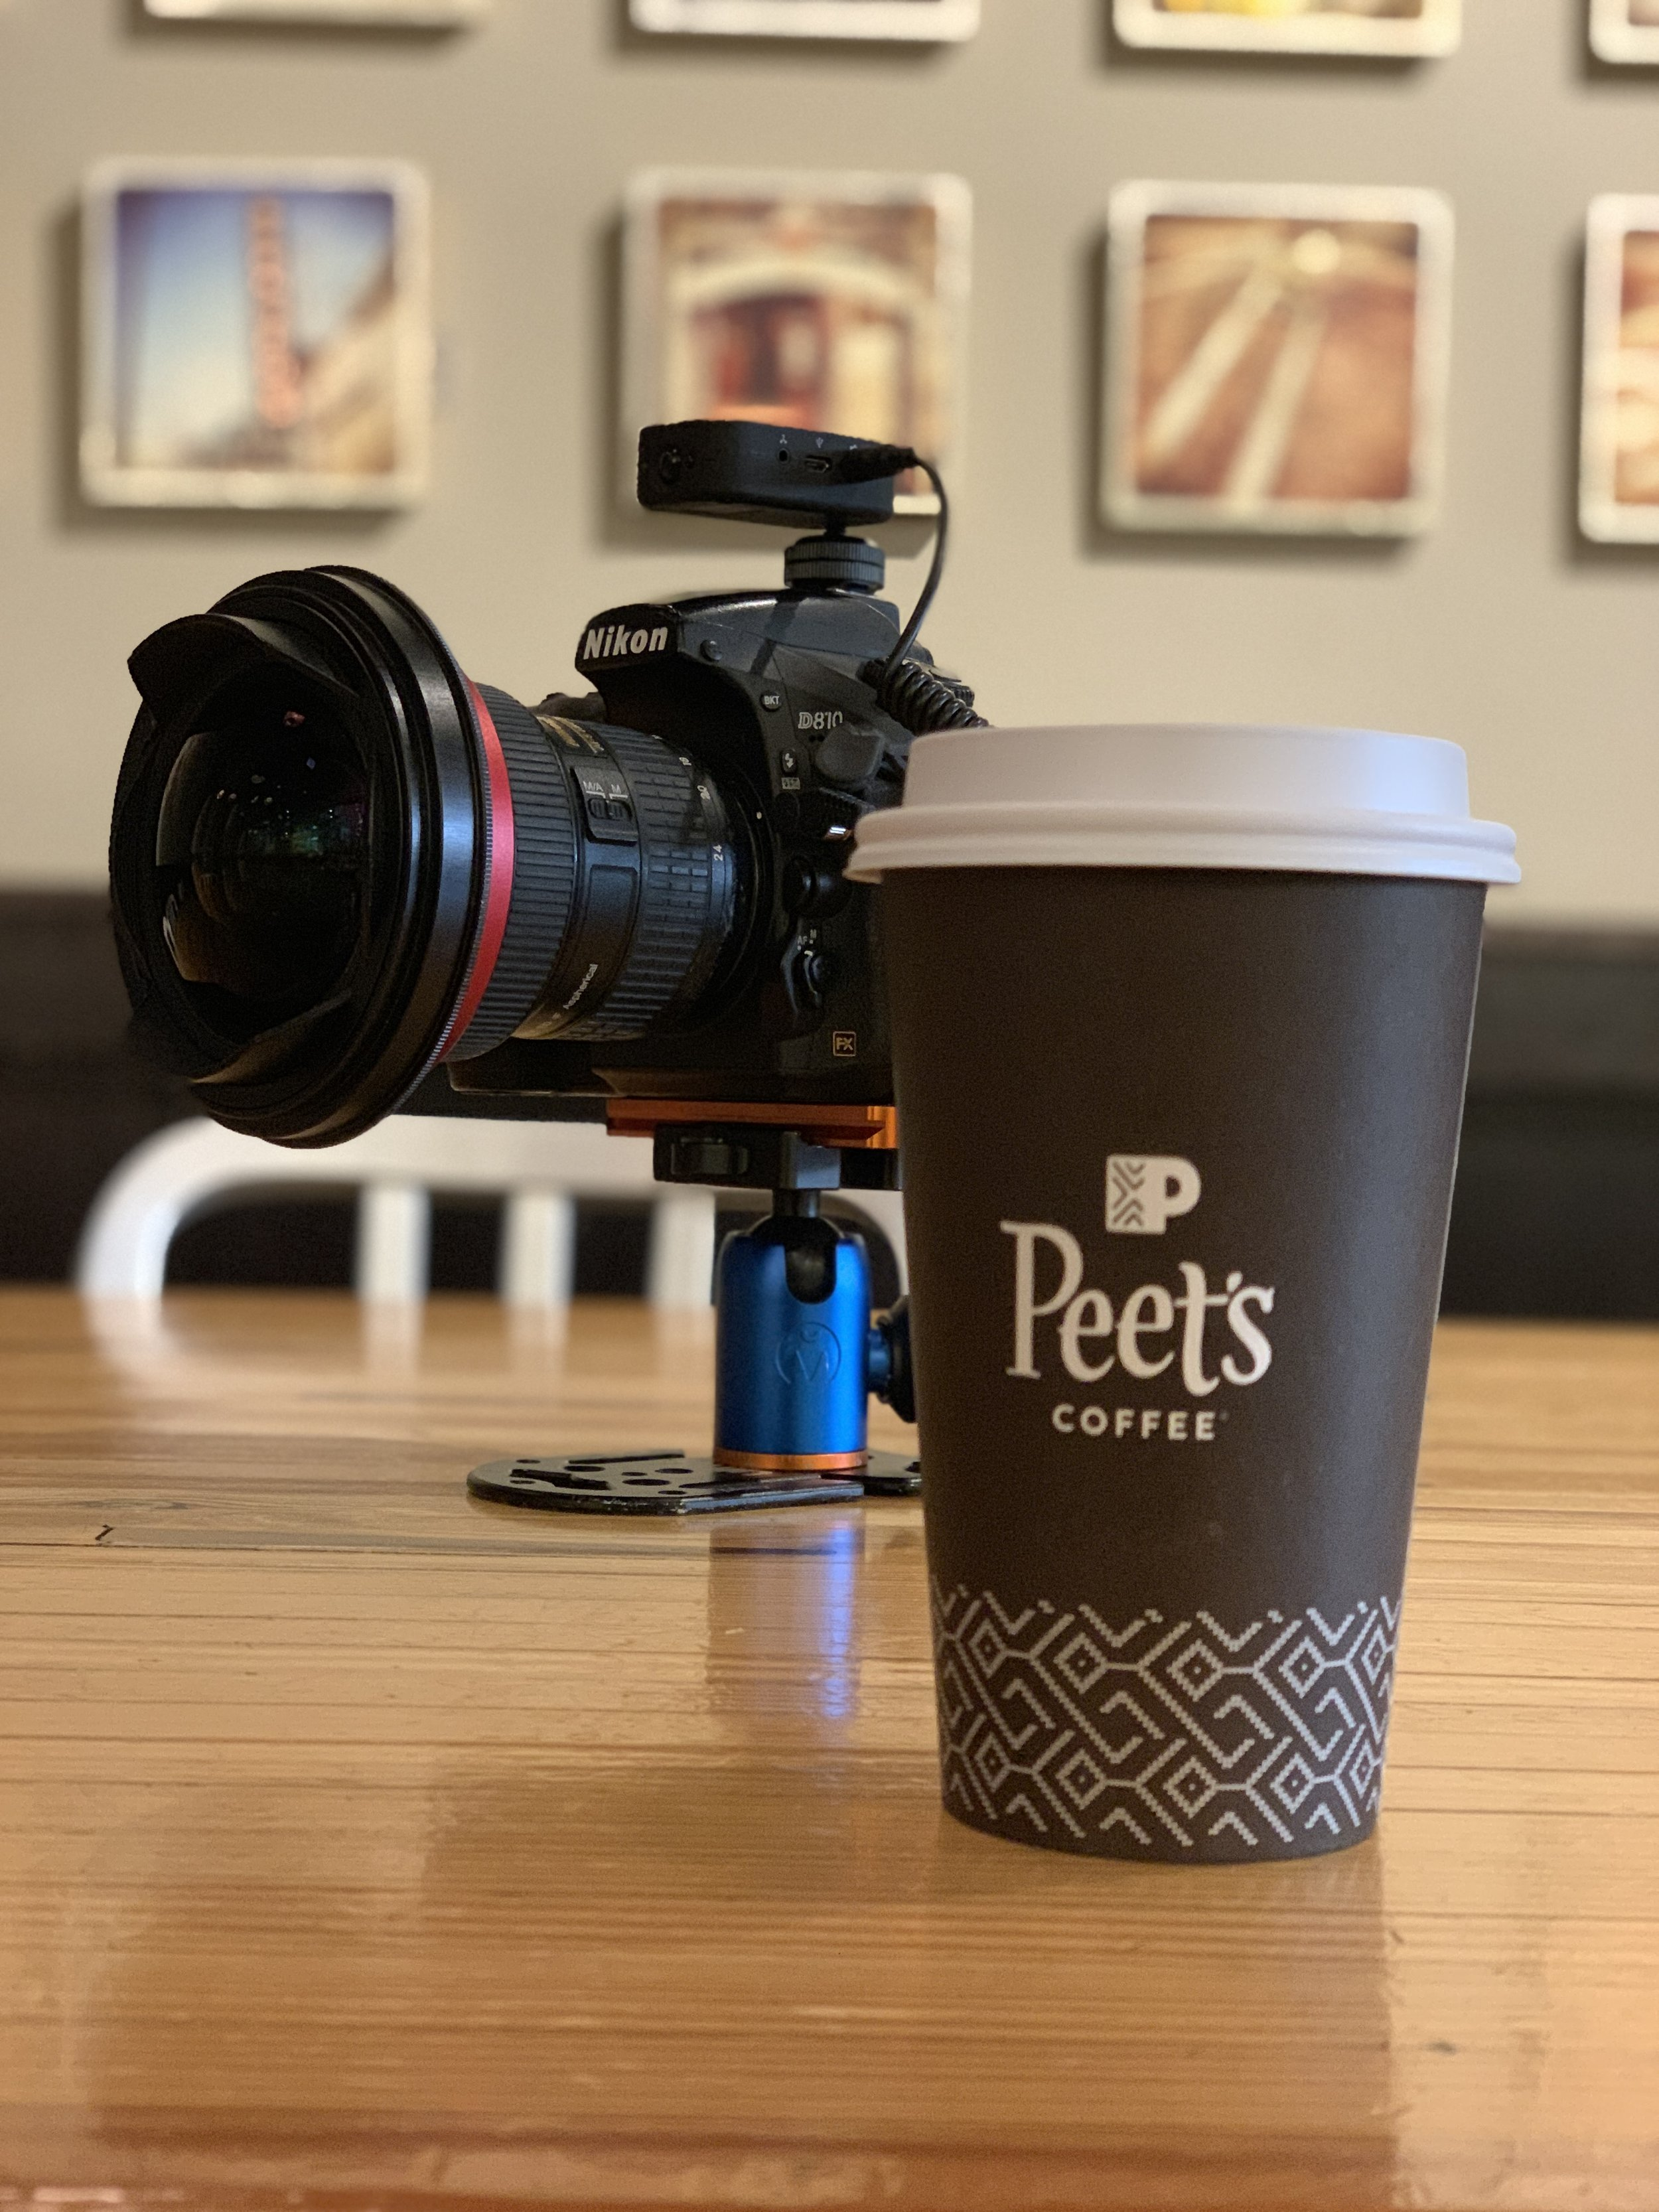 Peets coffee table top photography